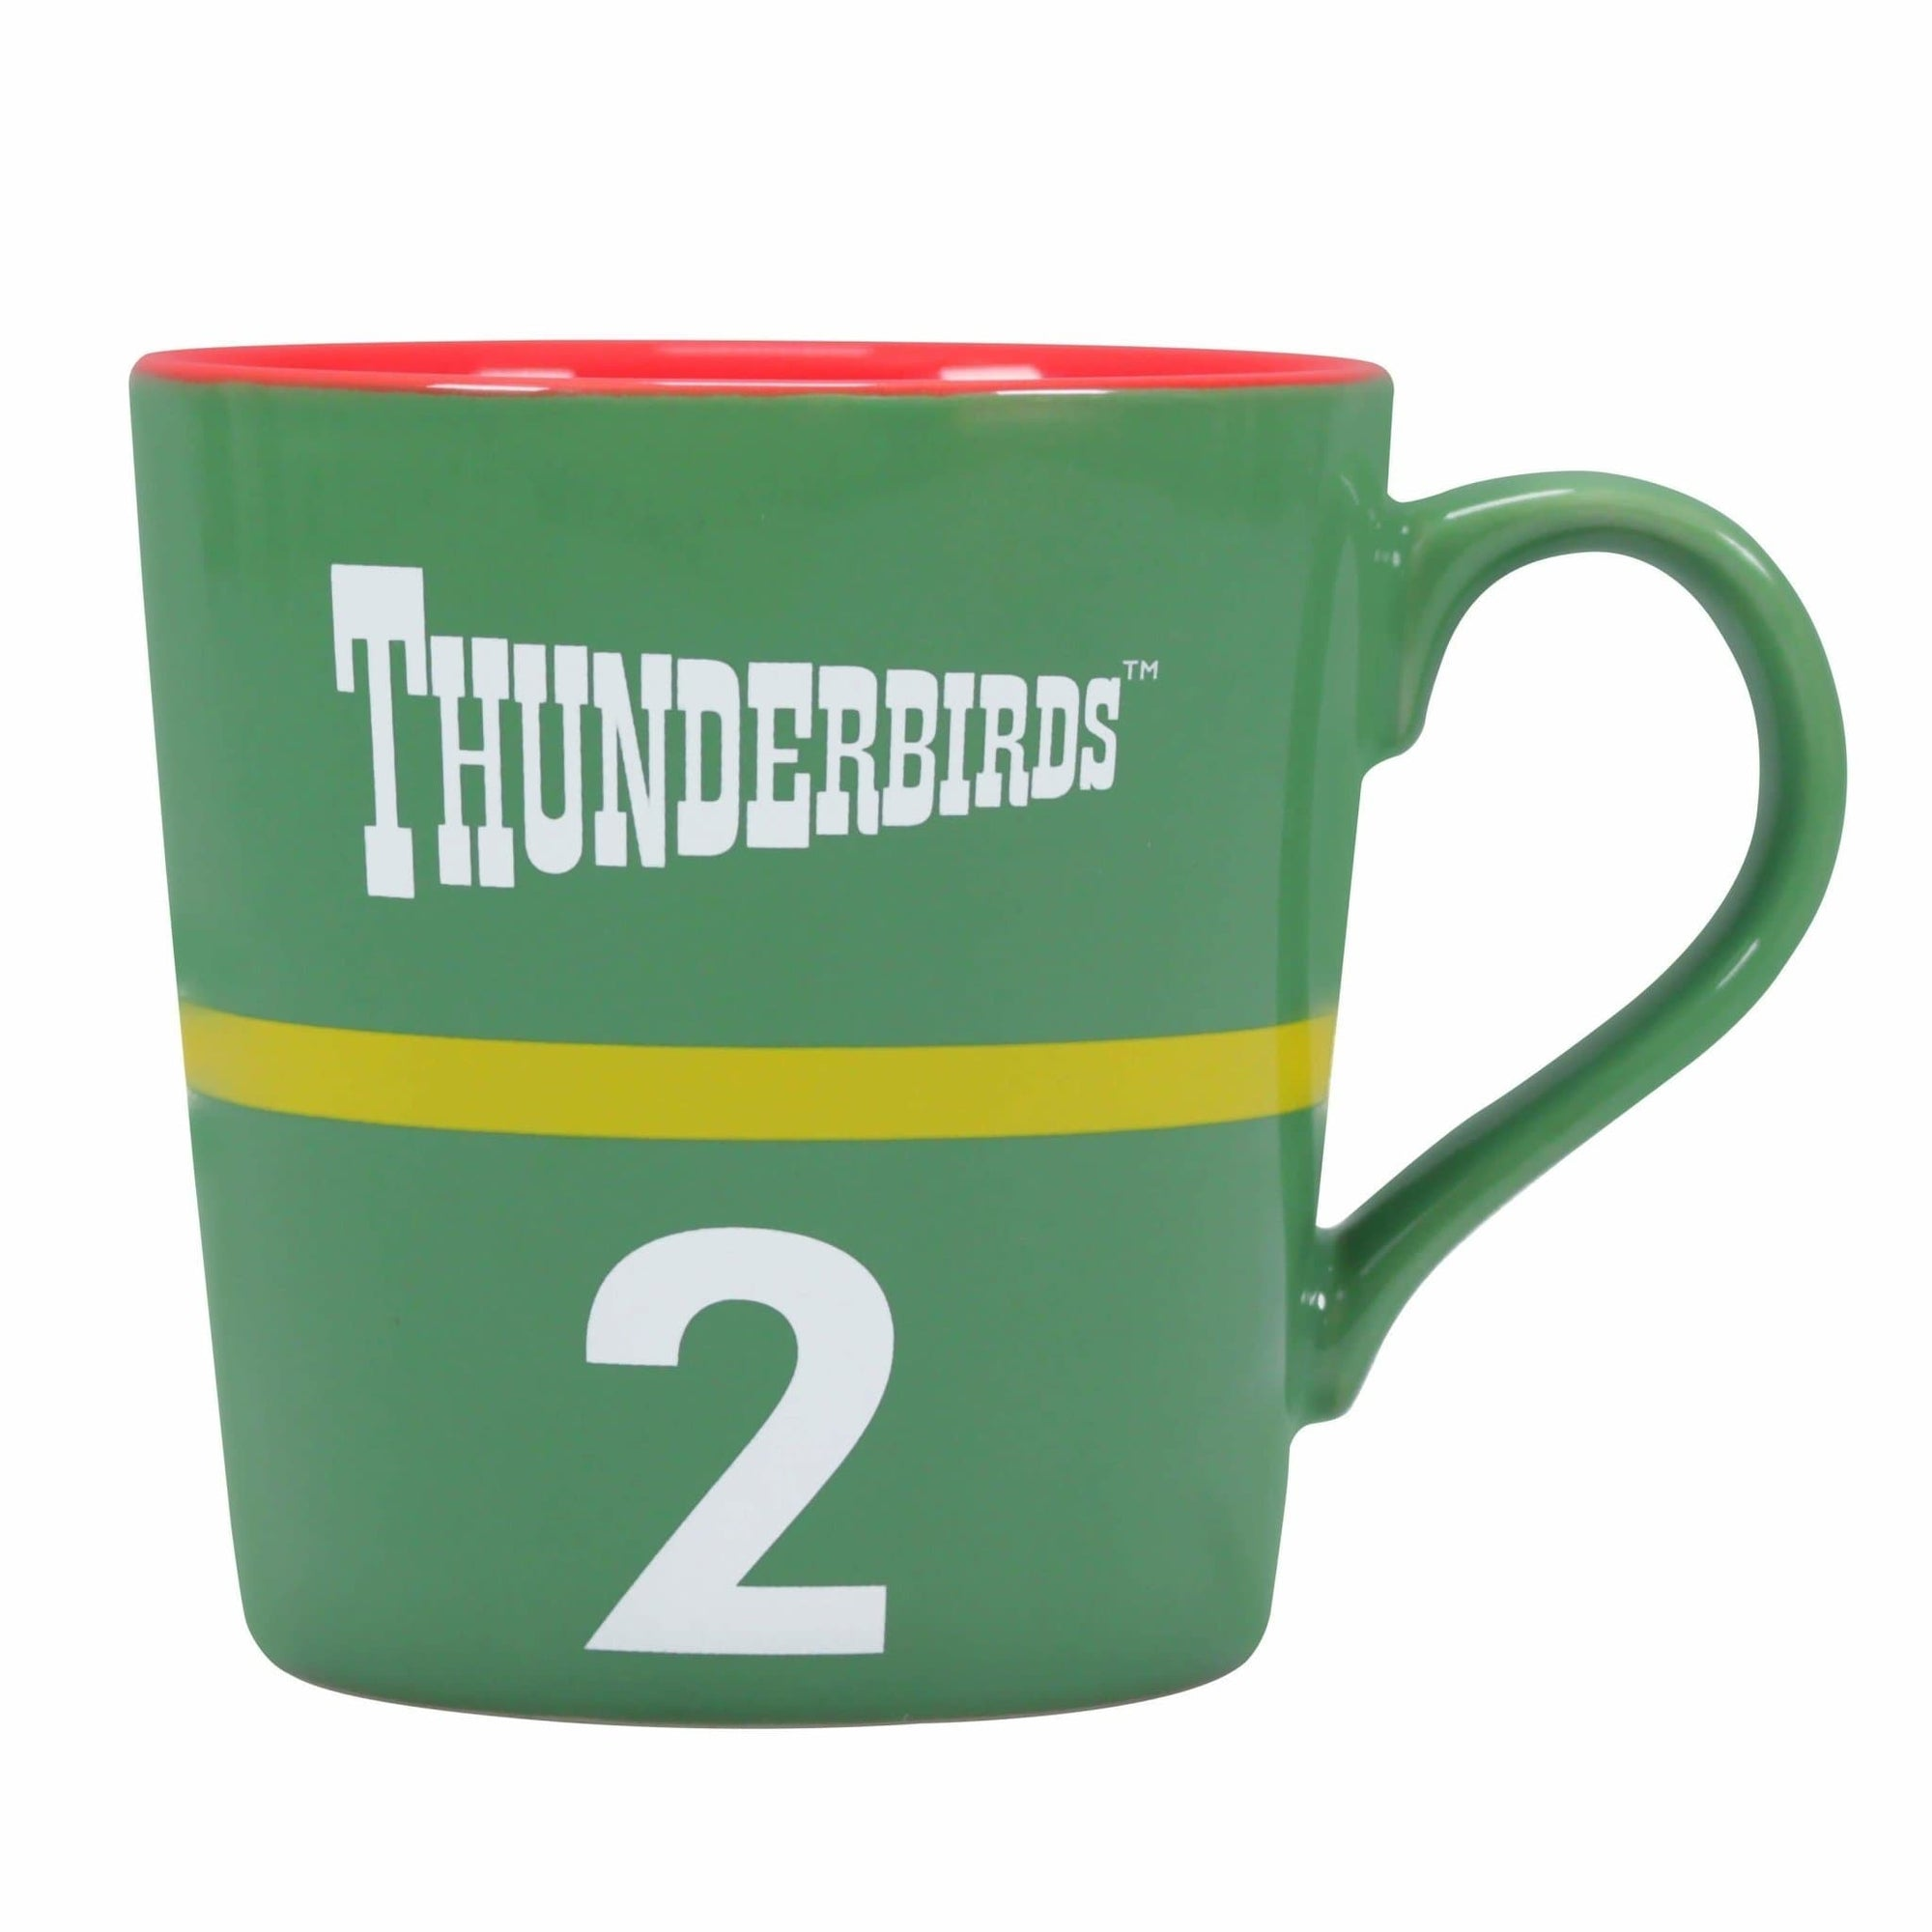 Thunderbird 2 Tapered Mug - The Gerry Anderson Store